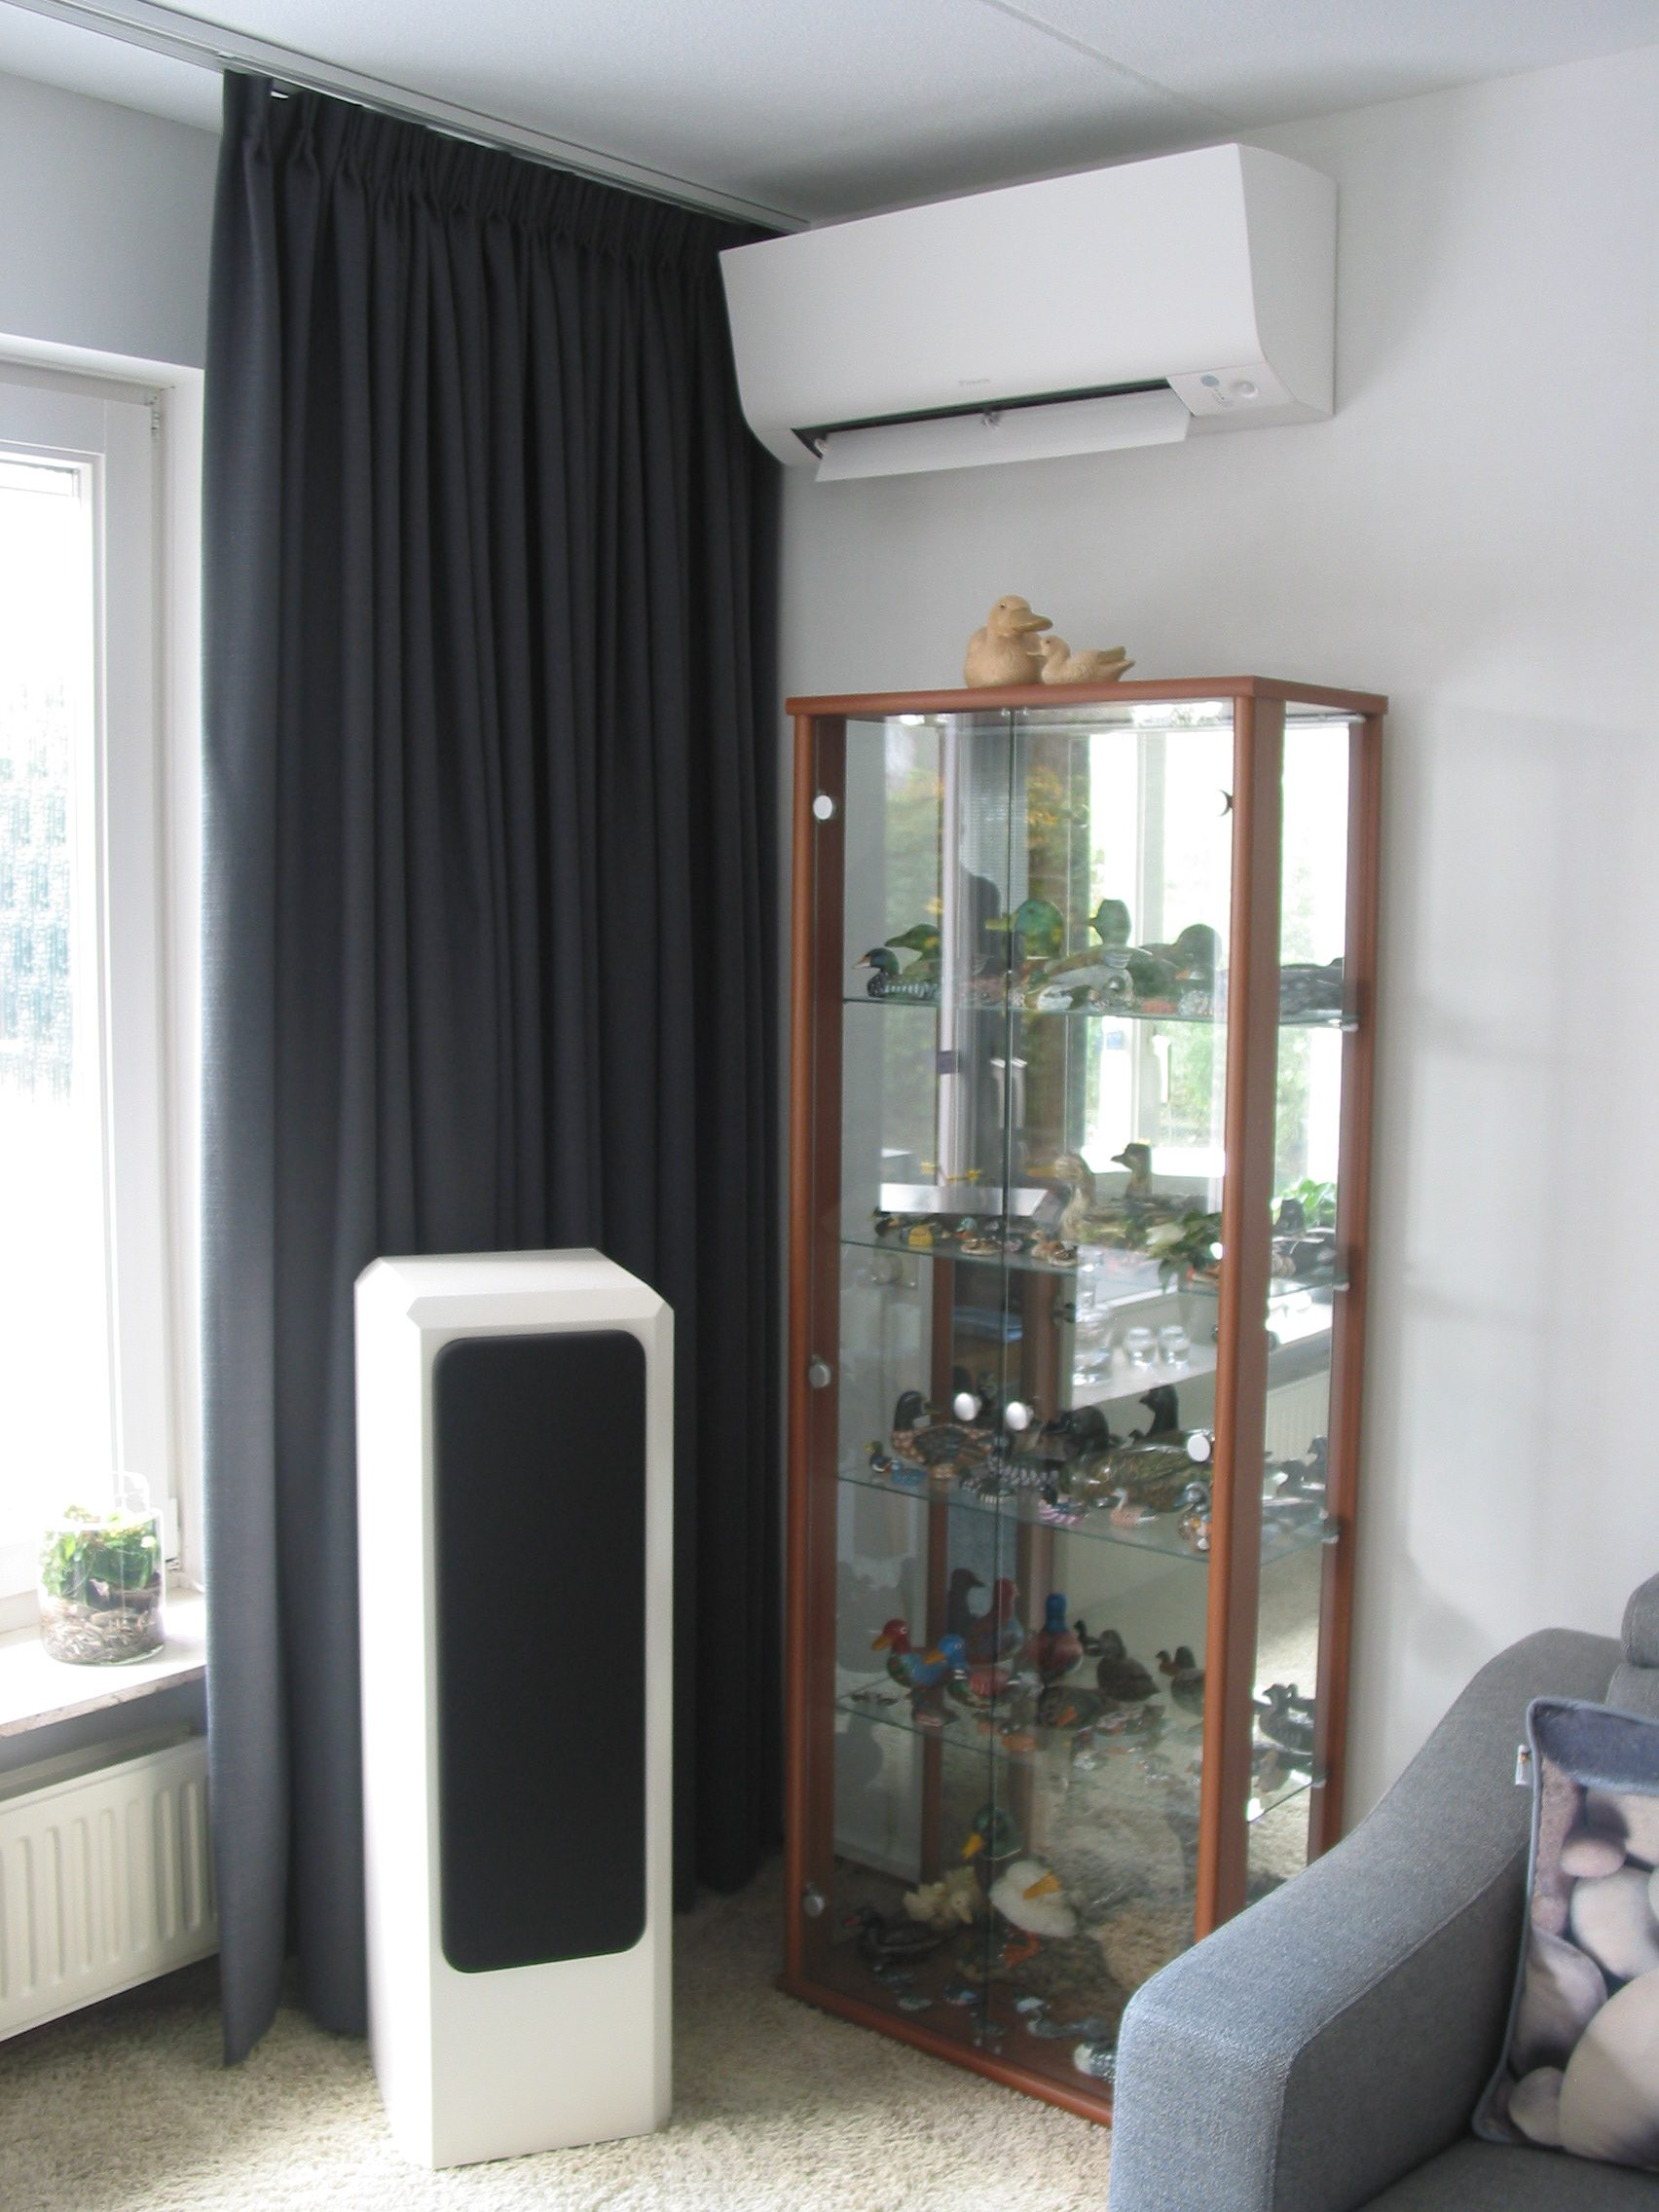 Airconditioning Woonhuis Culemborg